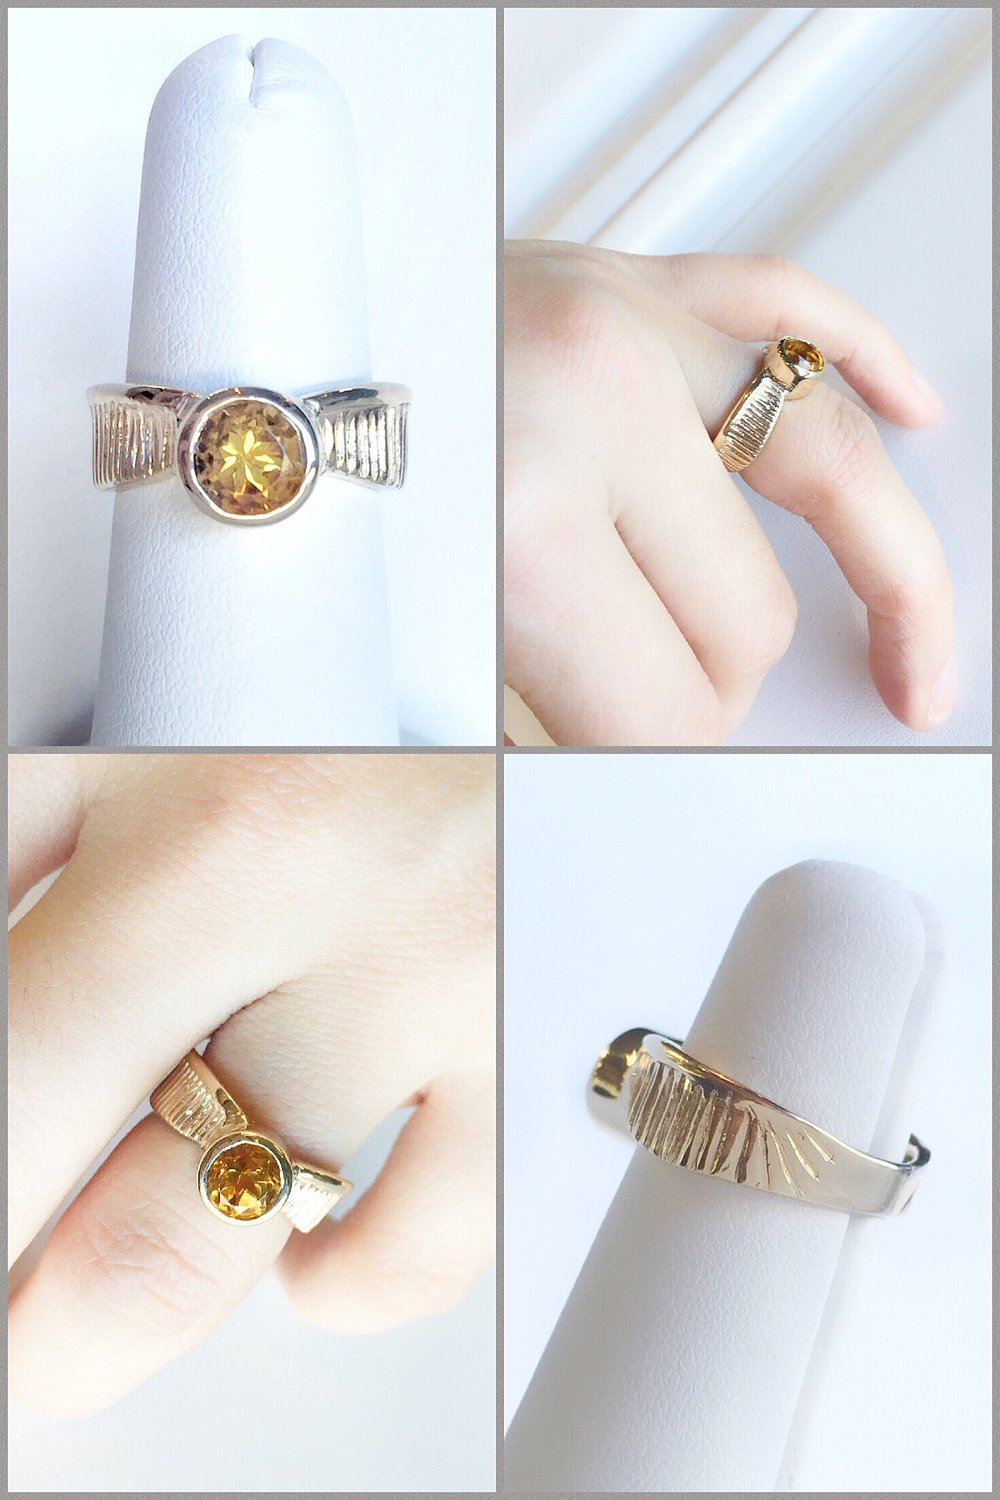 14K Yellow Gold Citrine Golden Snitch Ring, Hand Carved, from the Harry Potter movies.